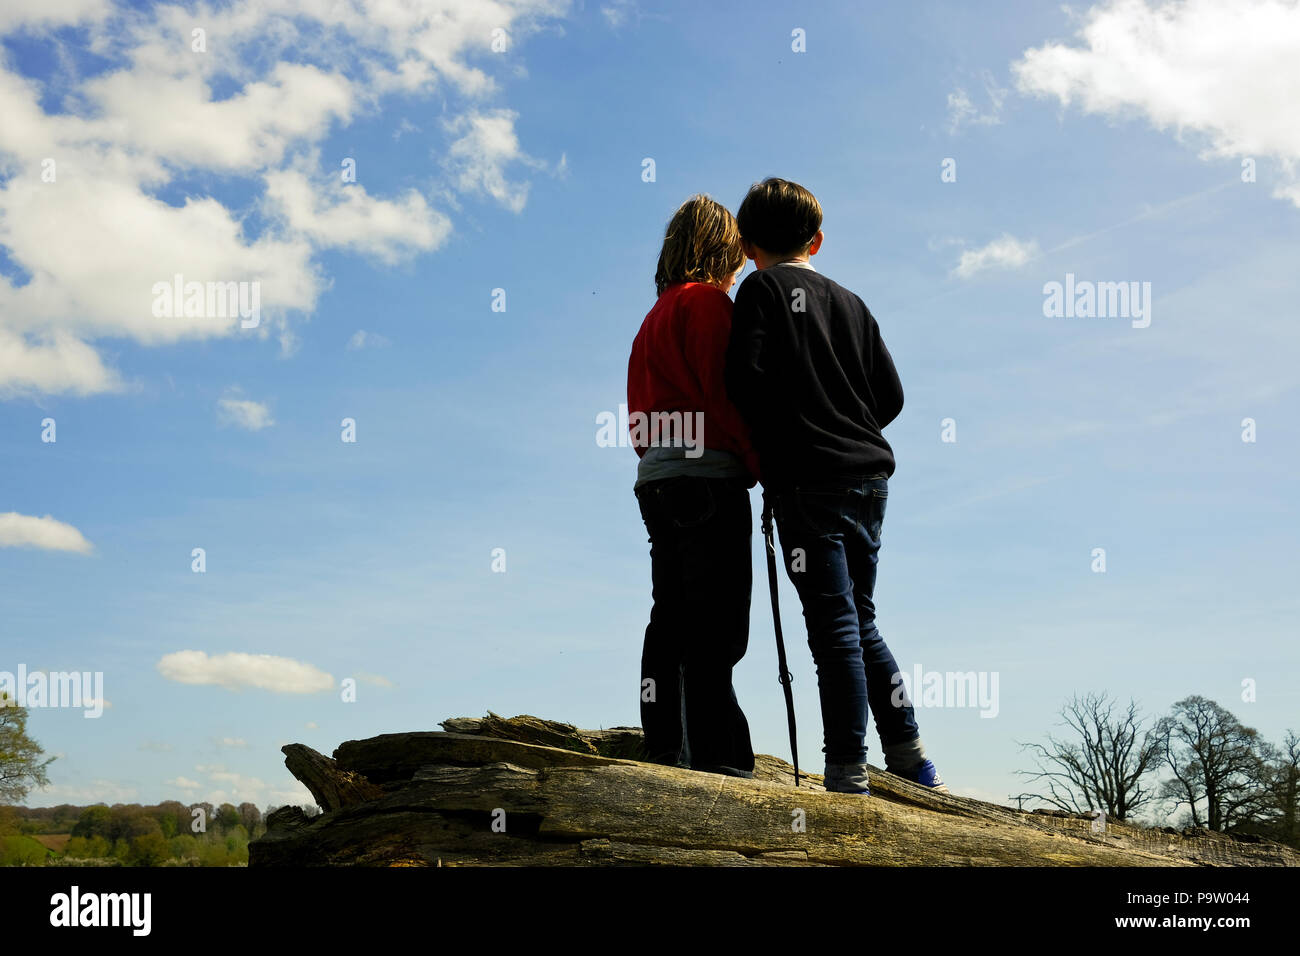 low angle rear portrait shot of two ten year old boys with dog lead standing on a fallen tree watching and discussing something in the distance - Stock Image